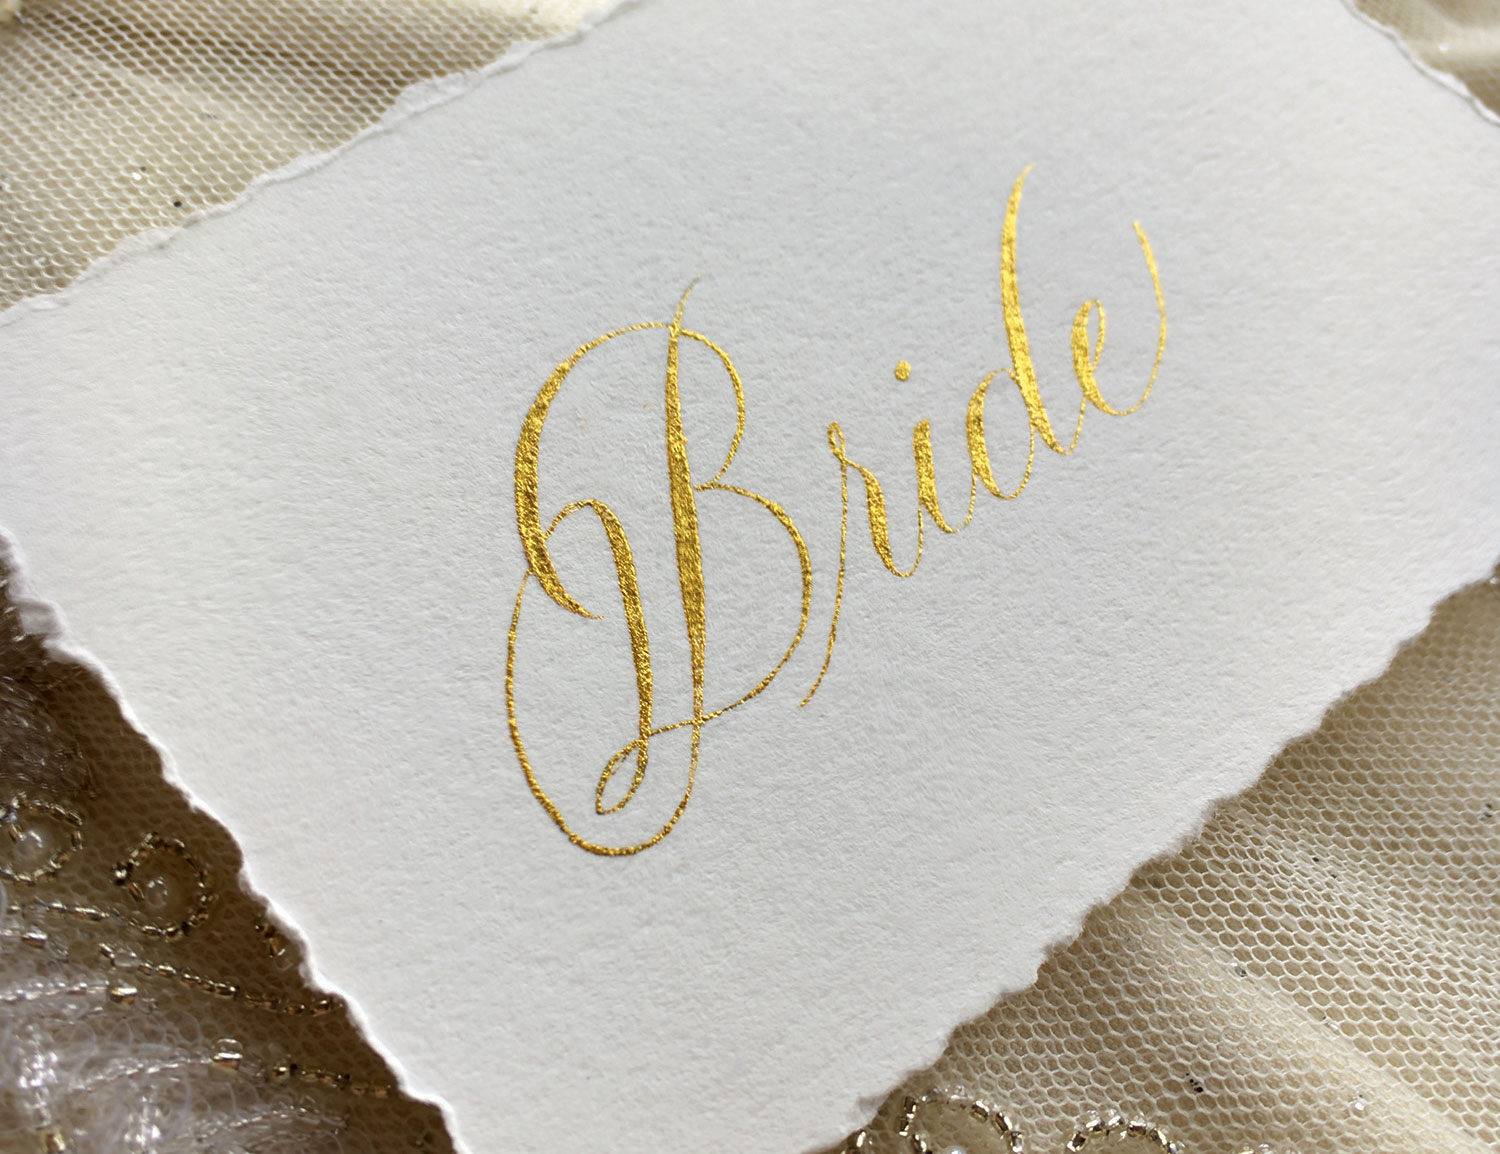 Pearl Ex calligraphy by Joi Hunt - bienfaitcalligraphy.com